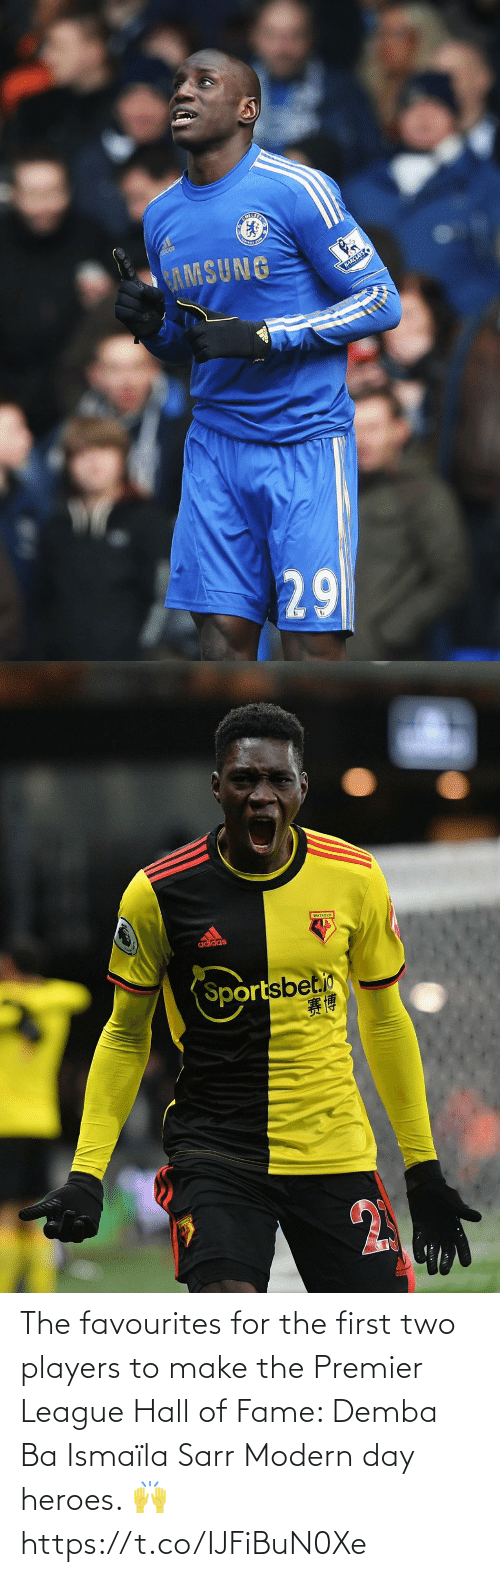 Premier League, Soccer, and Heroes: The favourites for the first two players to make the Premier League Hall of Fame:   Demba Ba Ismaïla Sarr  Modern day heroes. 🙌 https://t.co/IJFiBuN0Xe